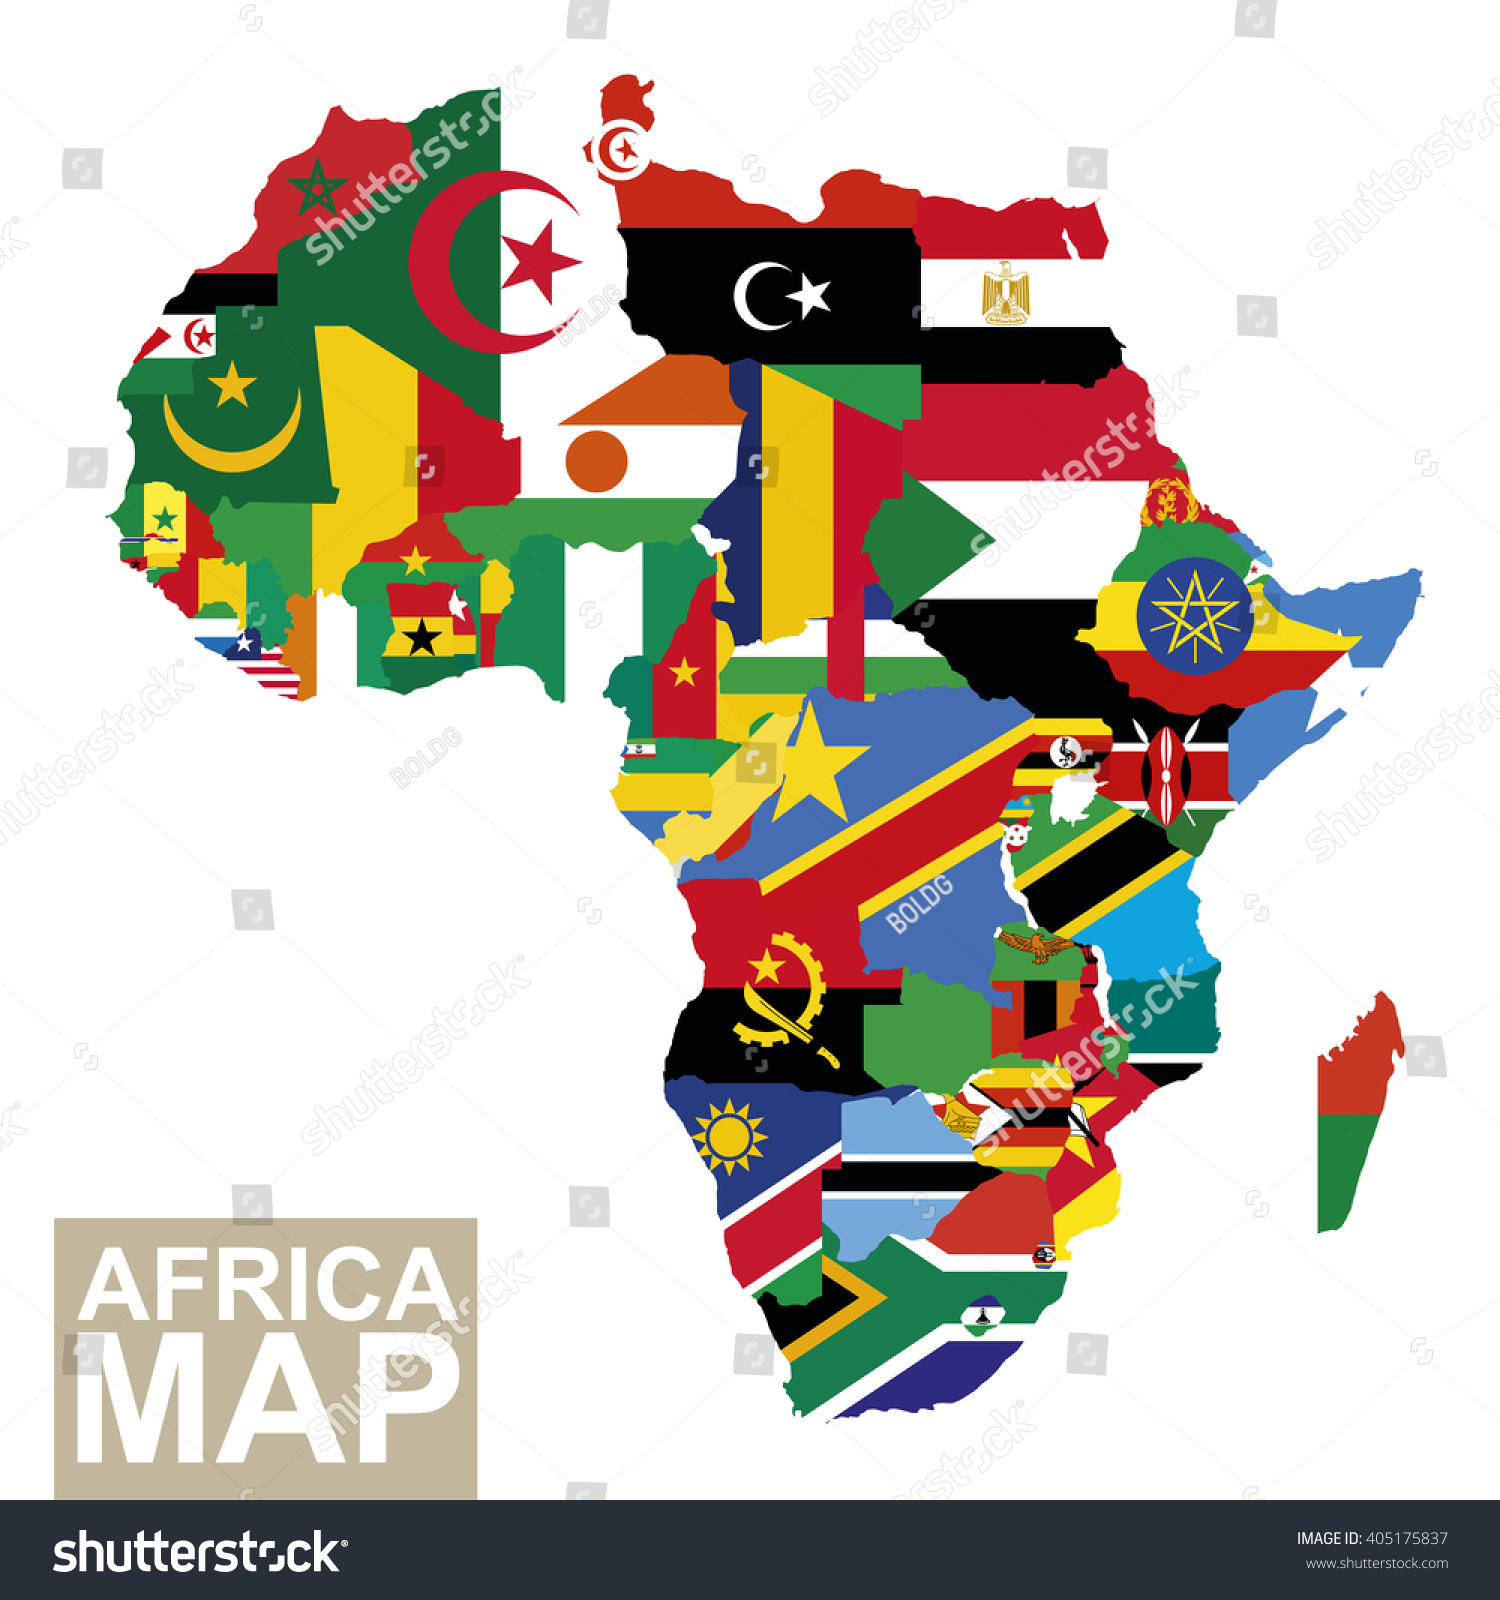 Africa map vector map africa flags stock vector 405175837 africa map vector map of africa with flags african countries flag vector illustration gumiabroncs Images